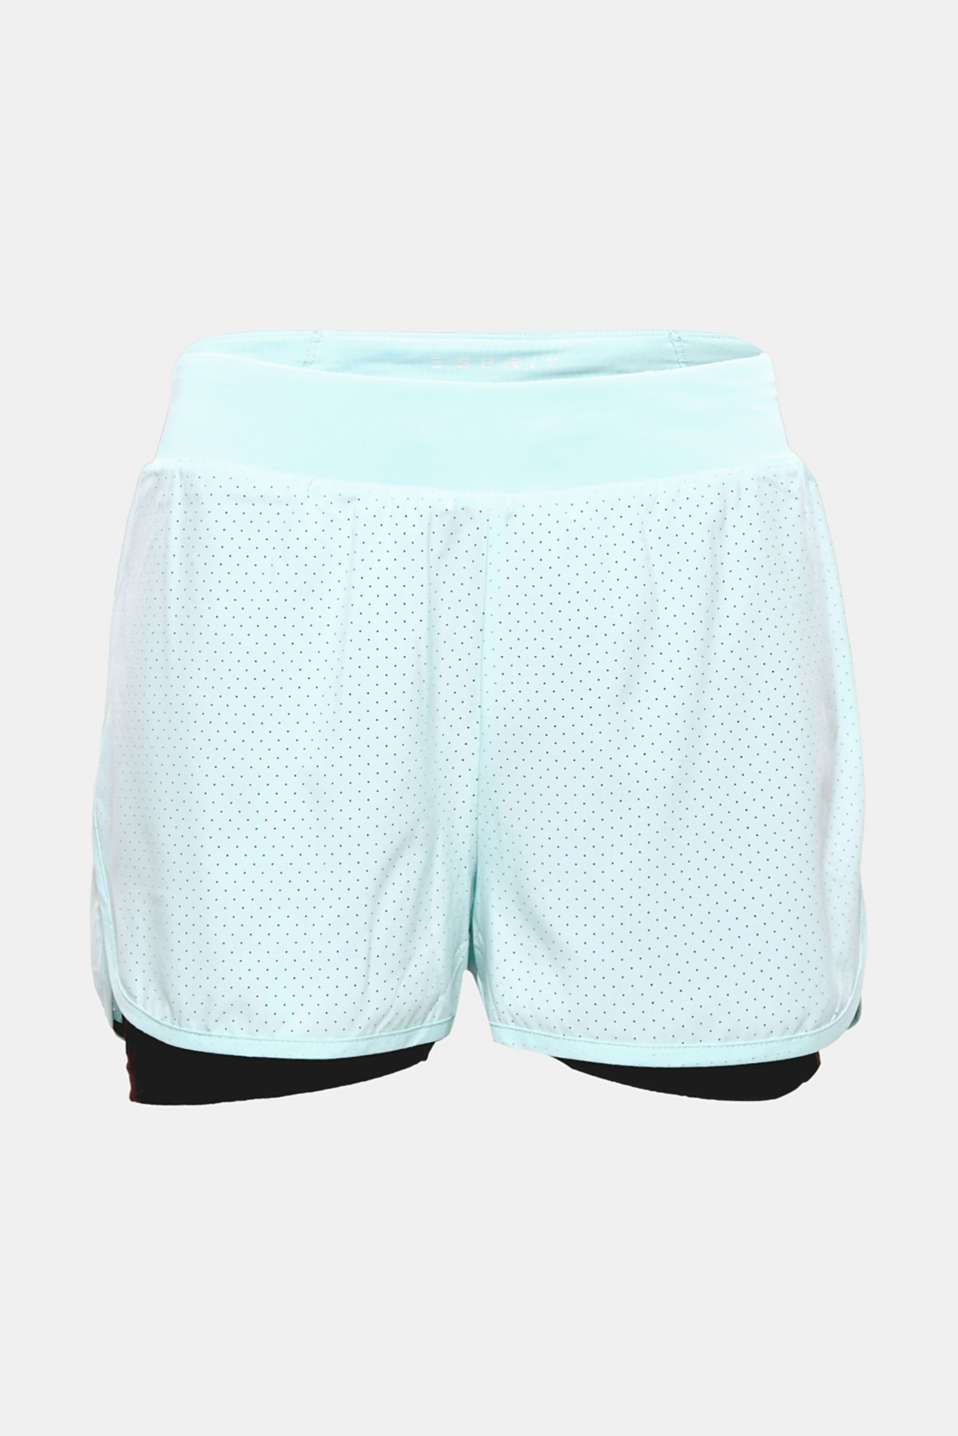 Sensationally stylish for all sporting activities: active, layered-effect shorts with an airy, laser-cut pattern and E-DRY finish!